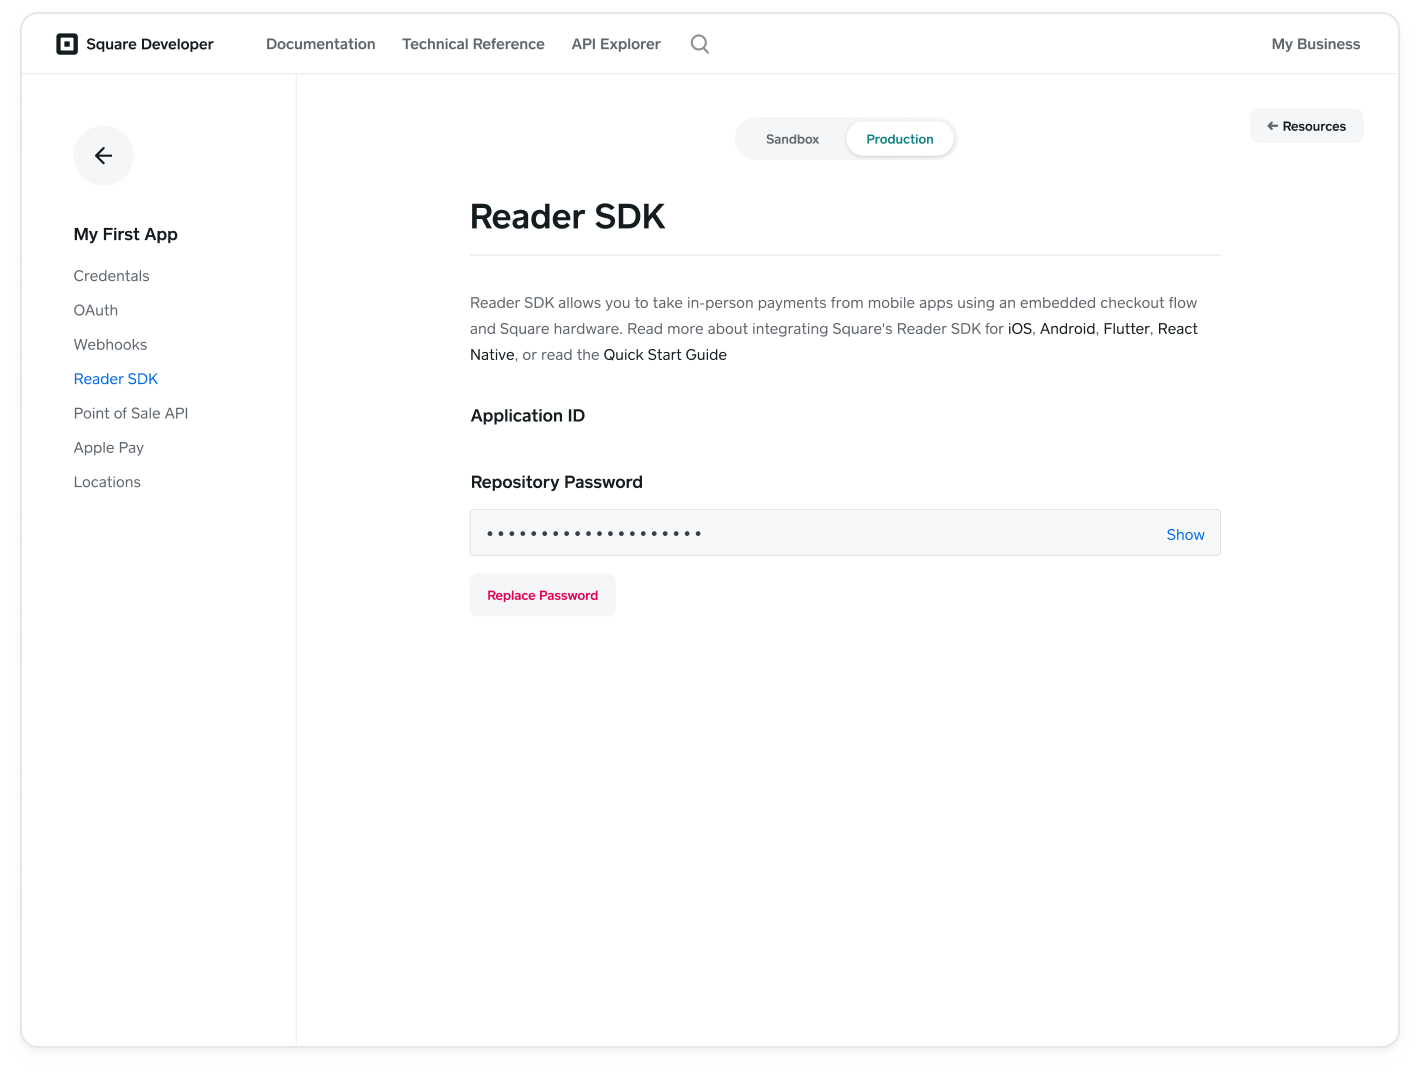 readersdk-settings-page